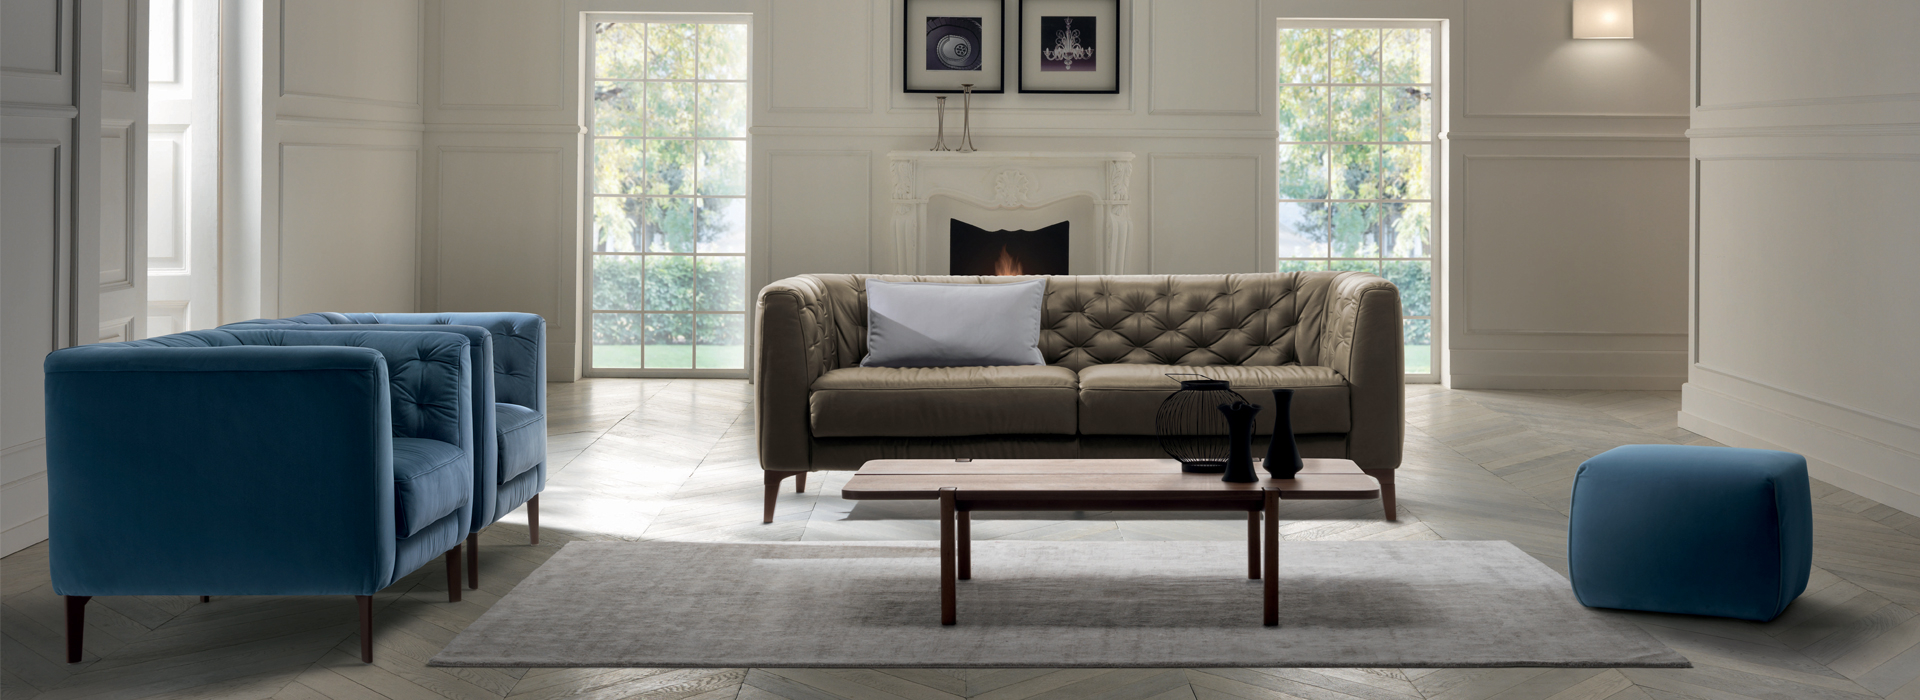 Natuzzi Italian Leather Sofas And Chairs Bracko Home throughout measurements 1920 X 700